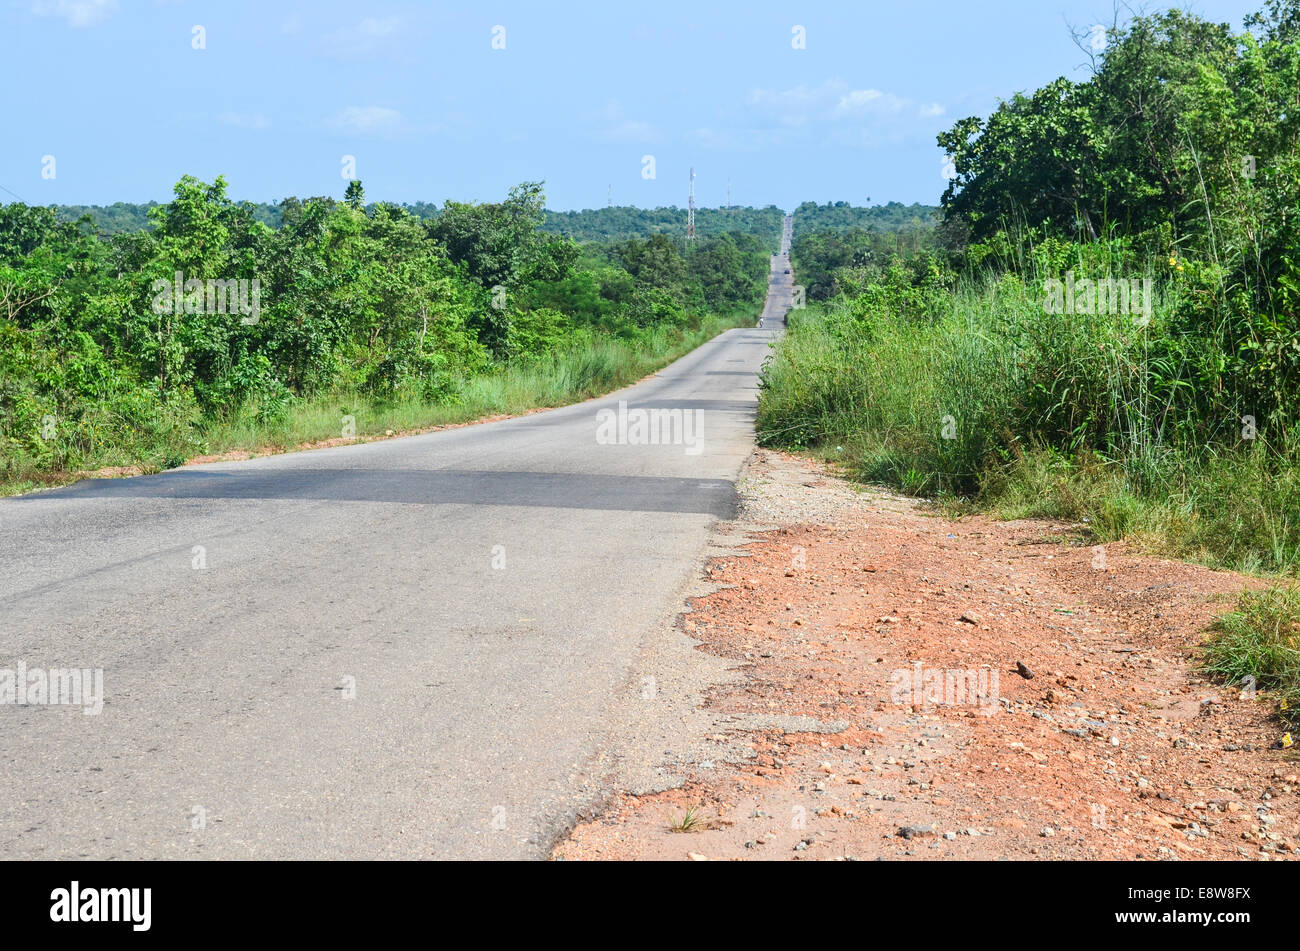 A long road to the horizon in Ogun state, Nigeria - Stock Image